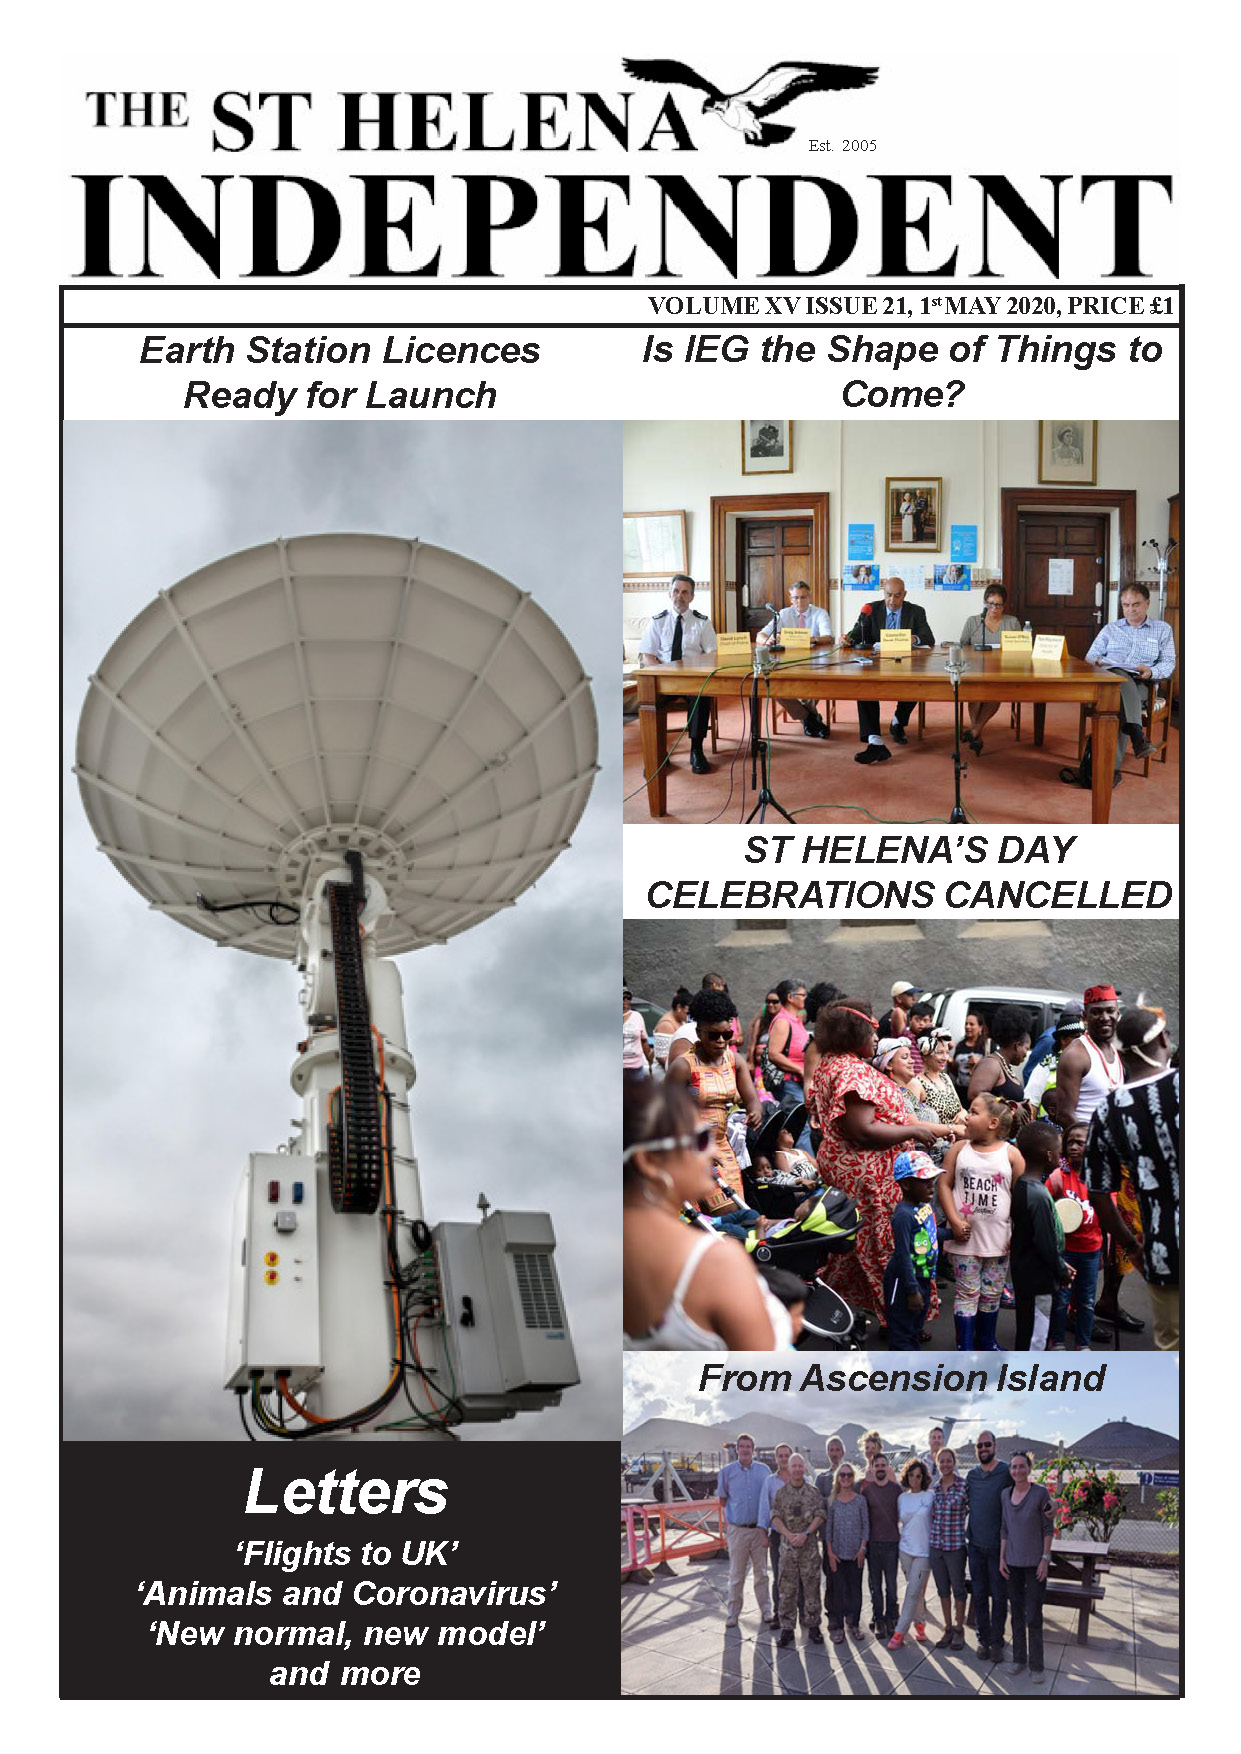 St Helena Independent 20200501 p1